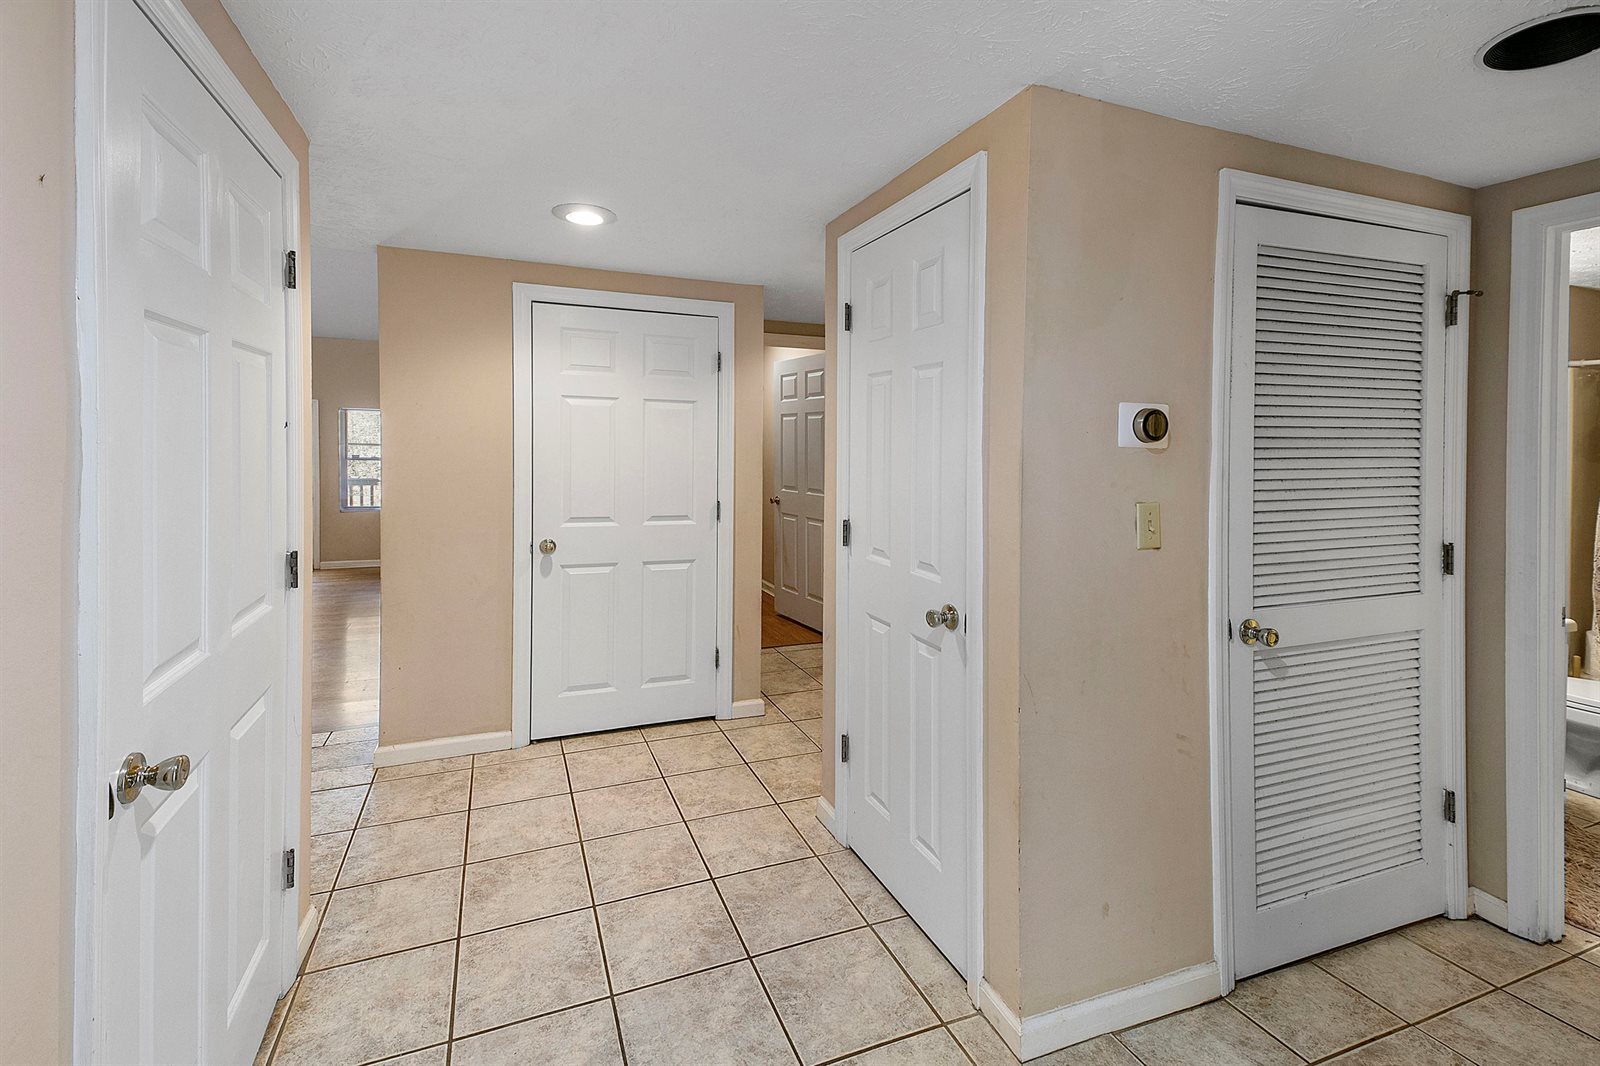 3638 Topside Rd, #B, Knoxville, TN 37920